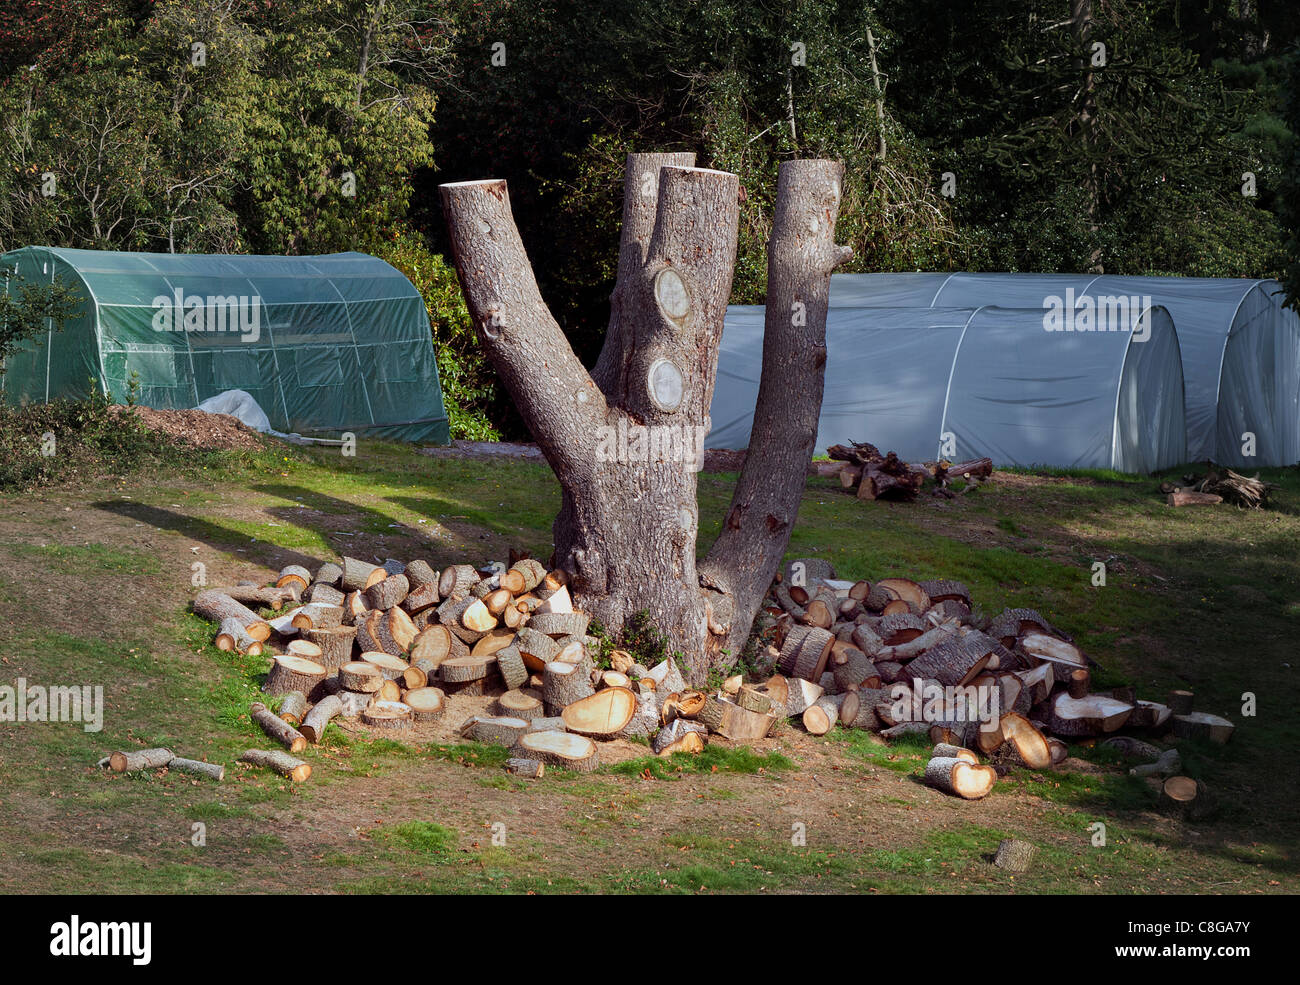 Wood burning fuel from a old damaged felled tree with piles of logs to be split for open fires and wood burners - Stock Image